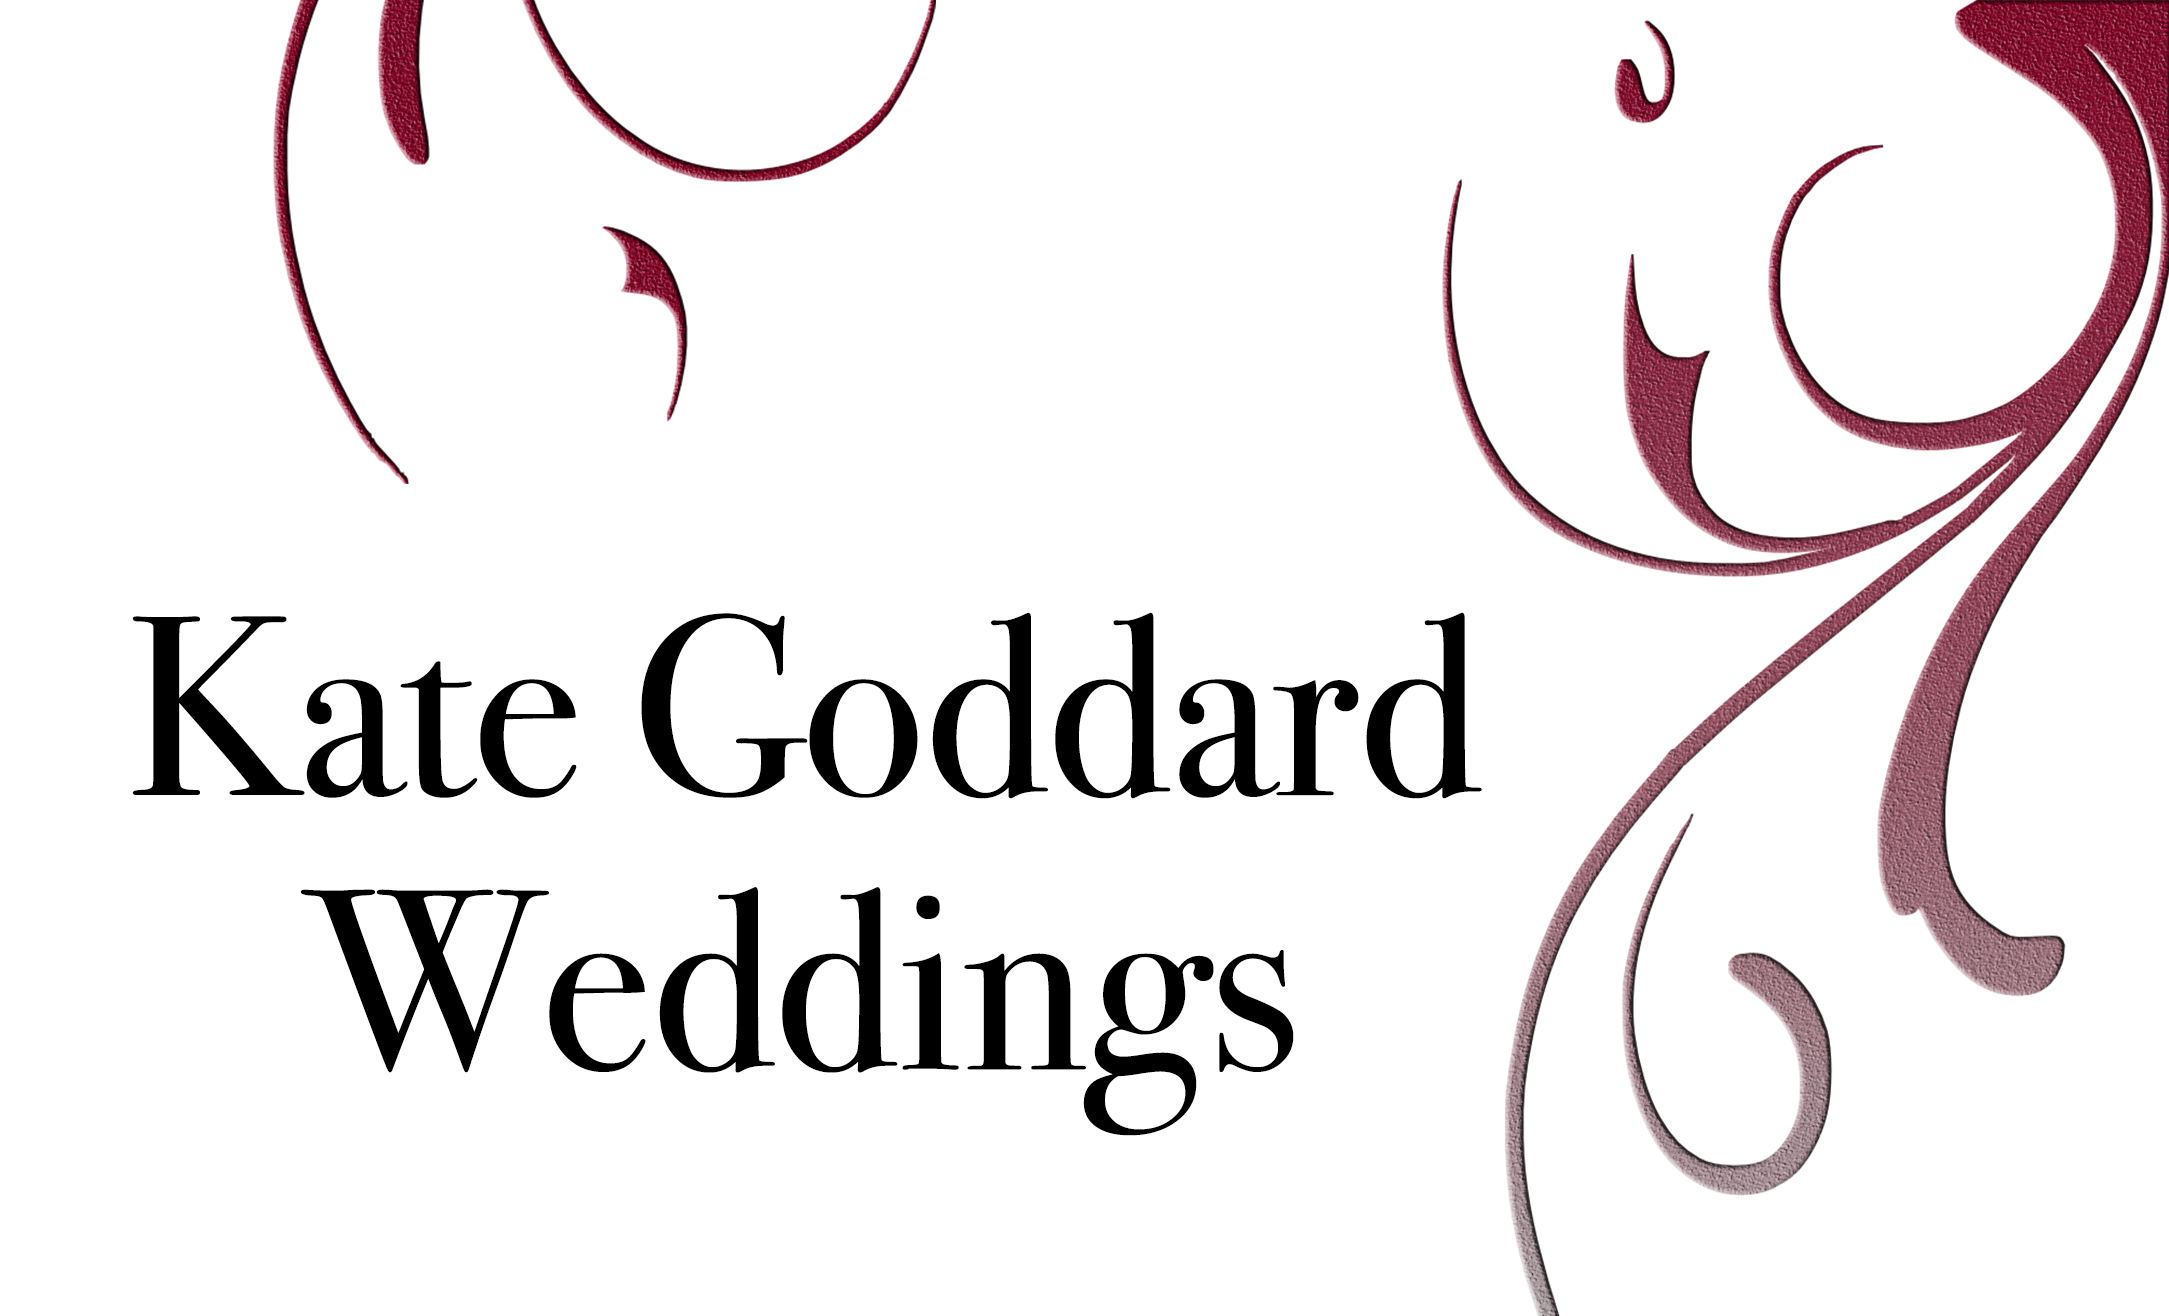 Kate Goddard Weddings